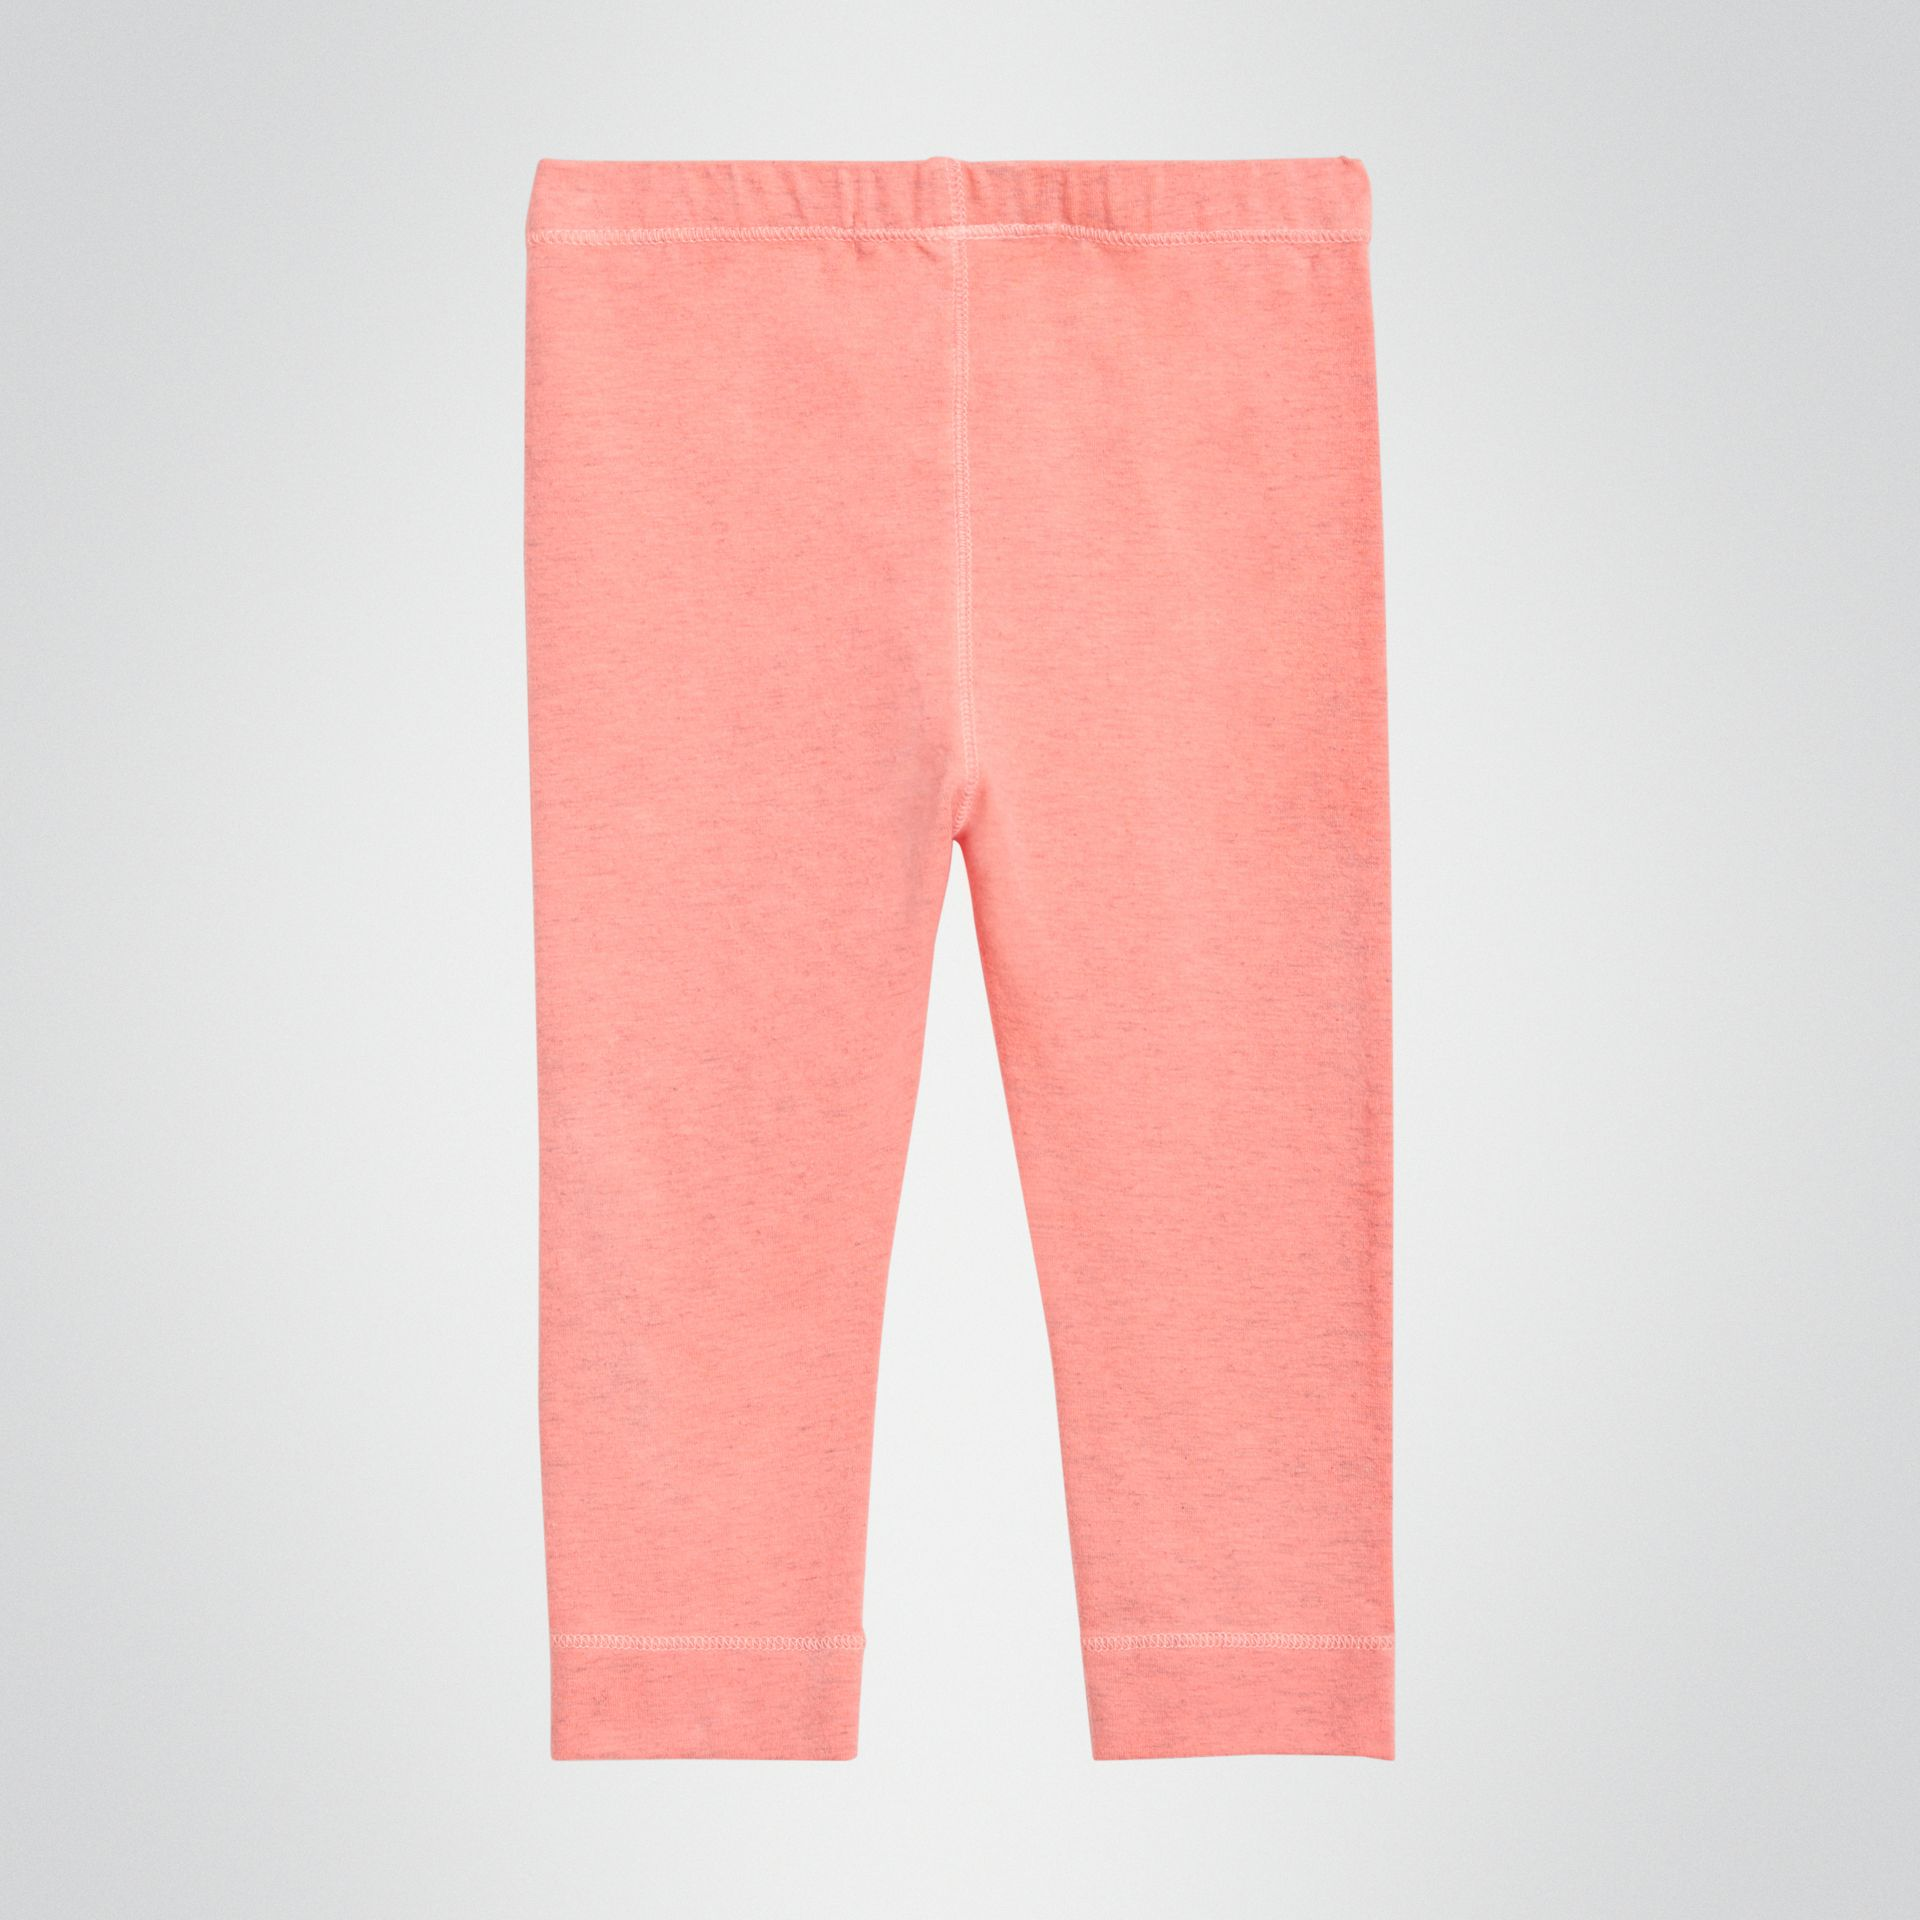 Logo Print Stretch Cotton Leggings in Pale Pink - Children | Burberry Canada - gallery image 3